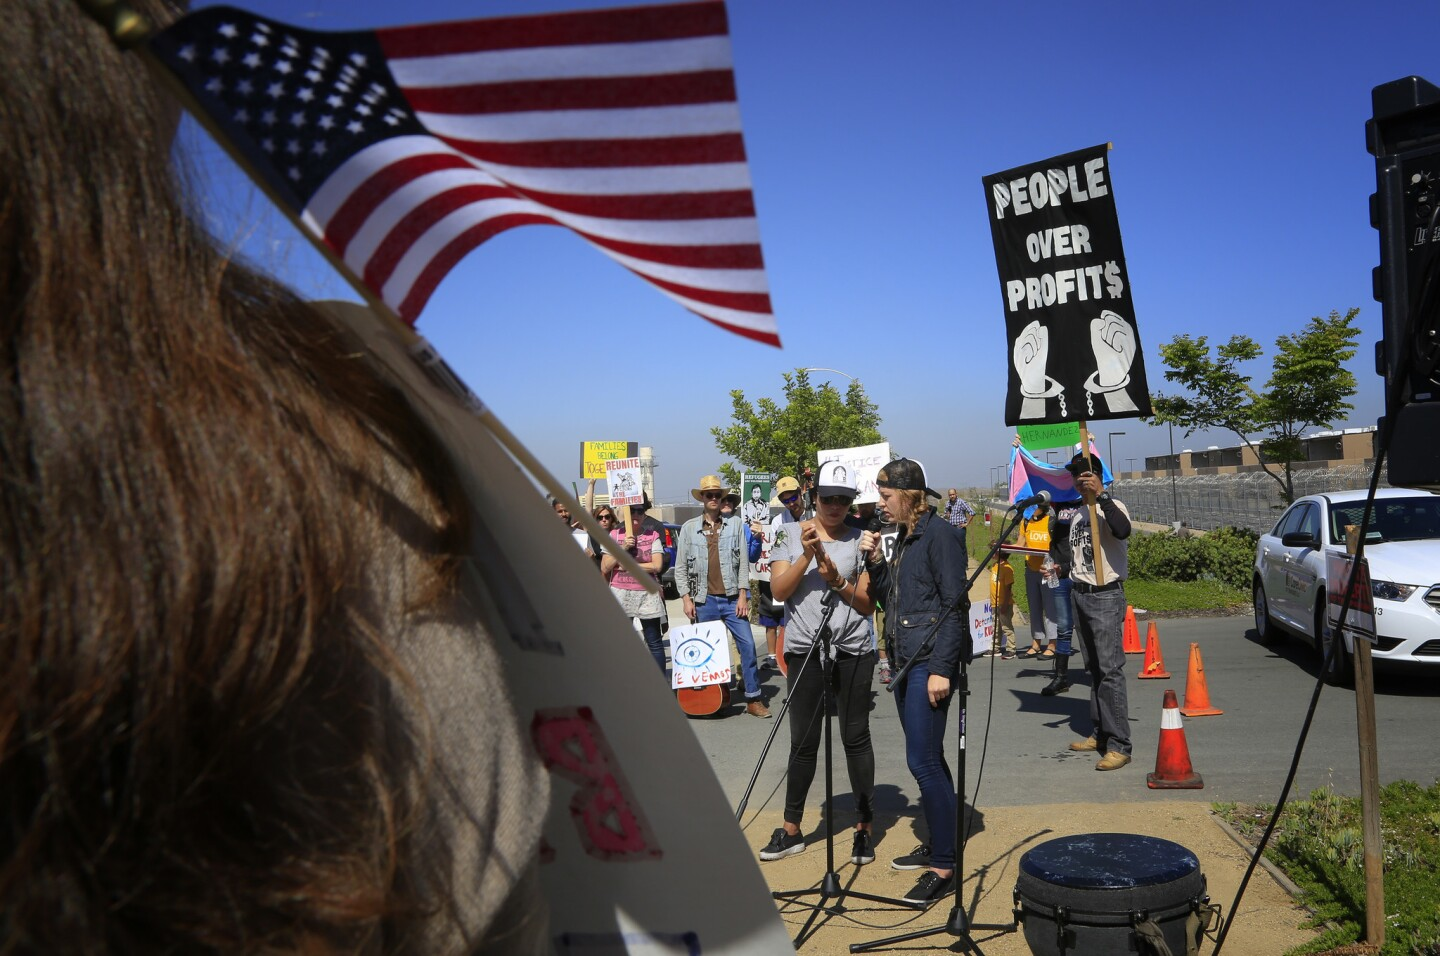 Speakers took turn speaking to the crowd of supporters during the protest rally near the entrance to the Otay Mesa Detention Center.